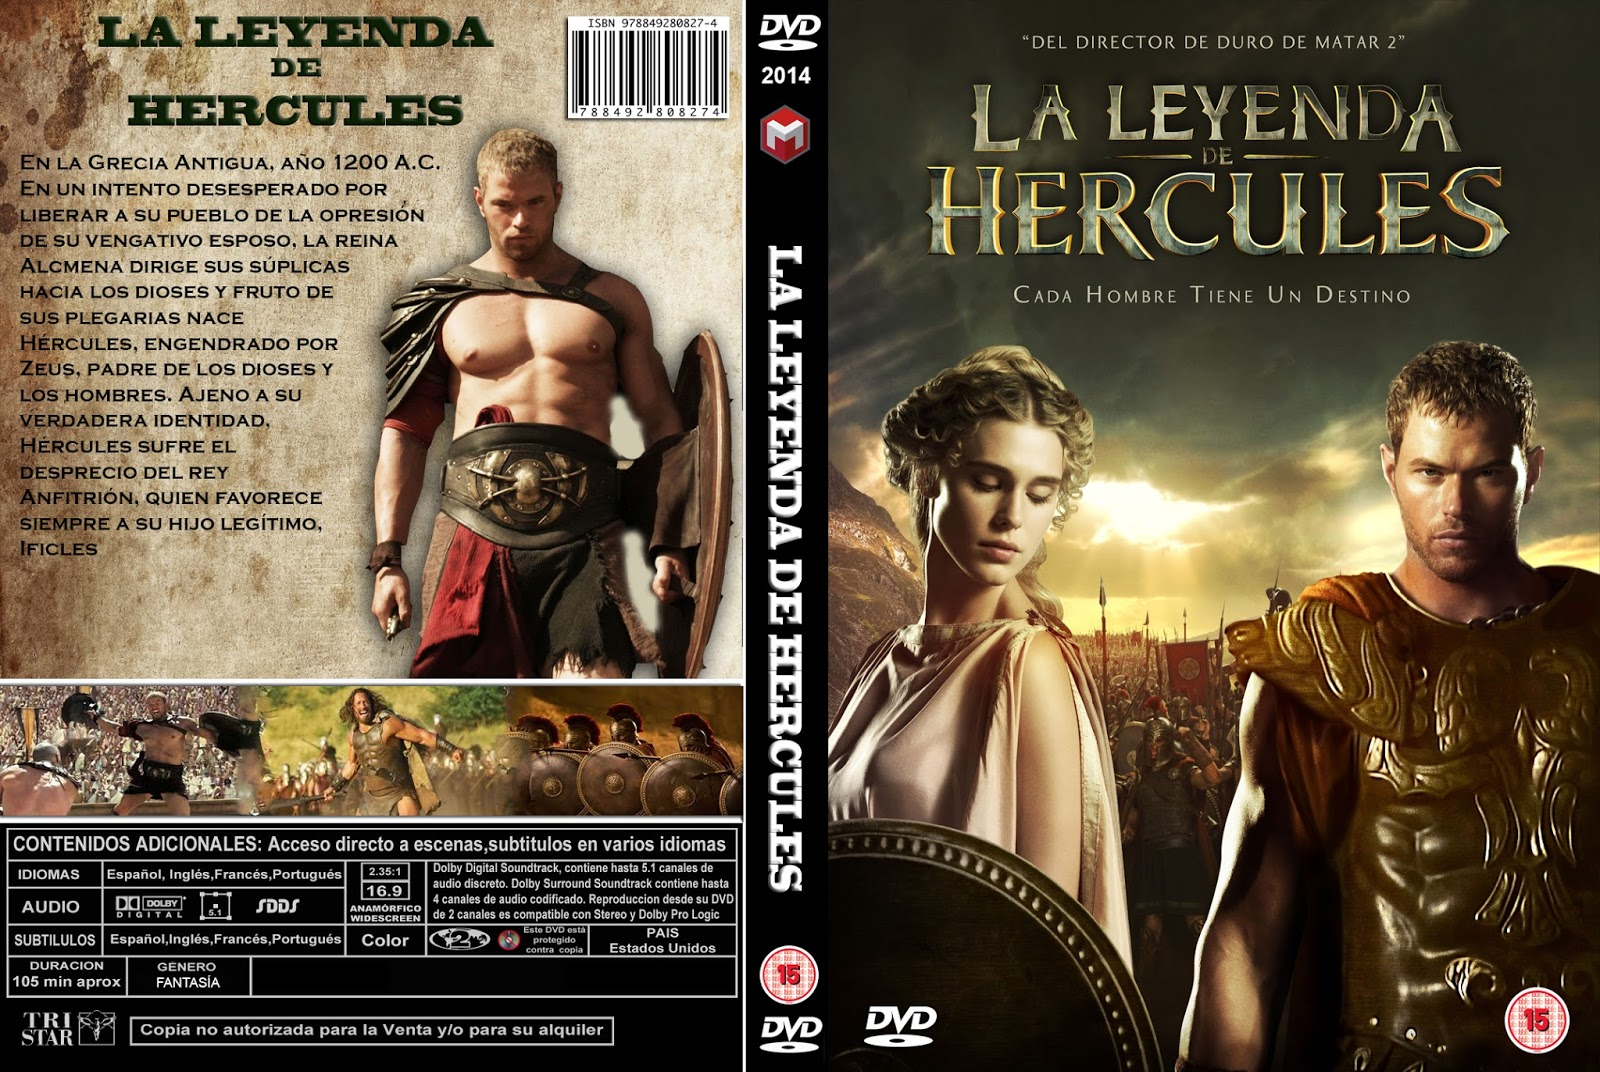 Hercules Dvd Cover images